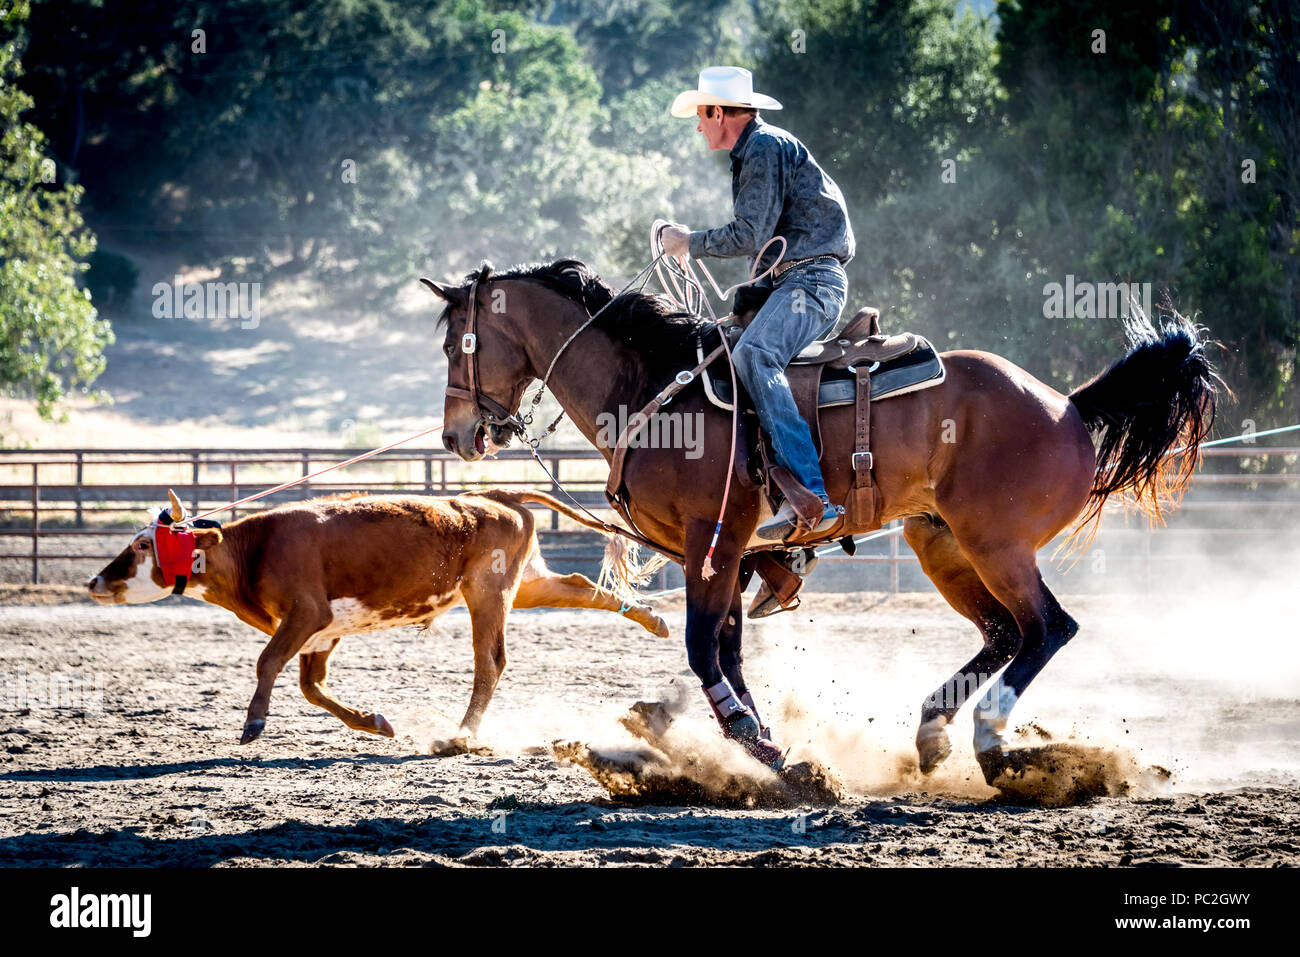 A real life cowboy wrangler with lasso roping young steer in a rodeo event in California, on horseback with cowboy hat in action shot, dust and sun. - Stock Image